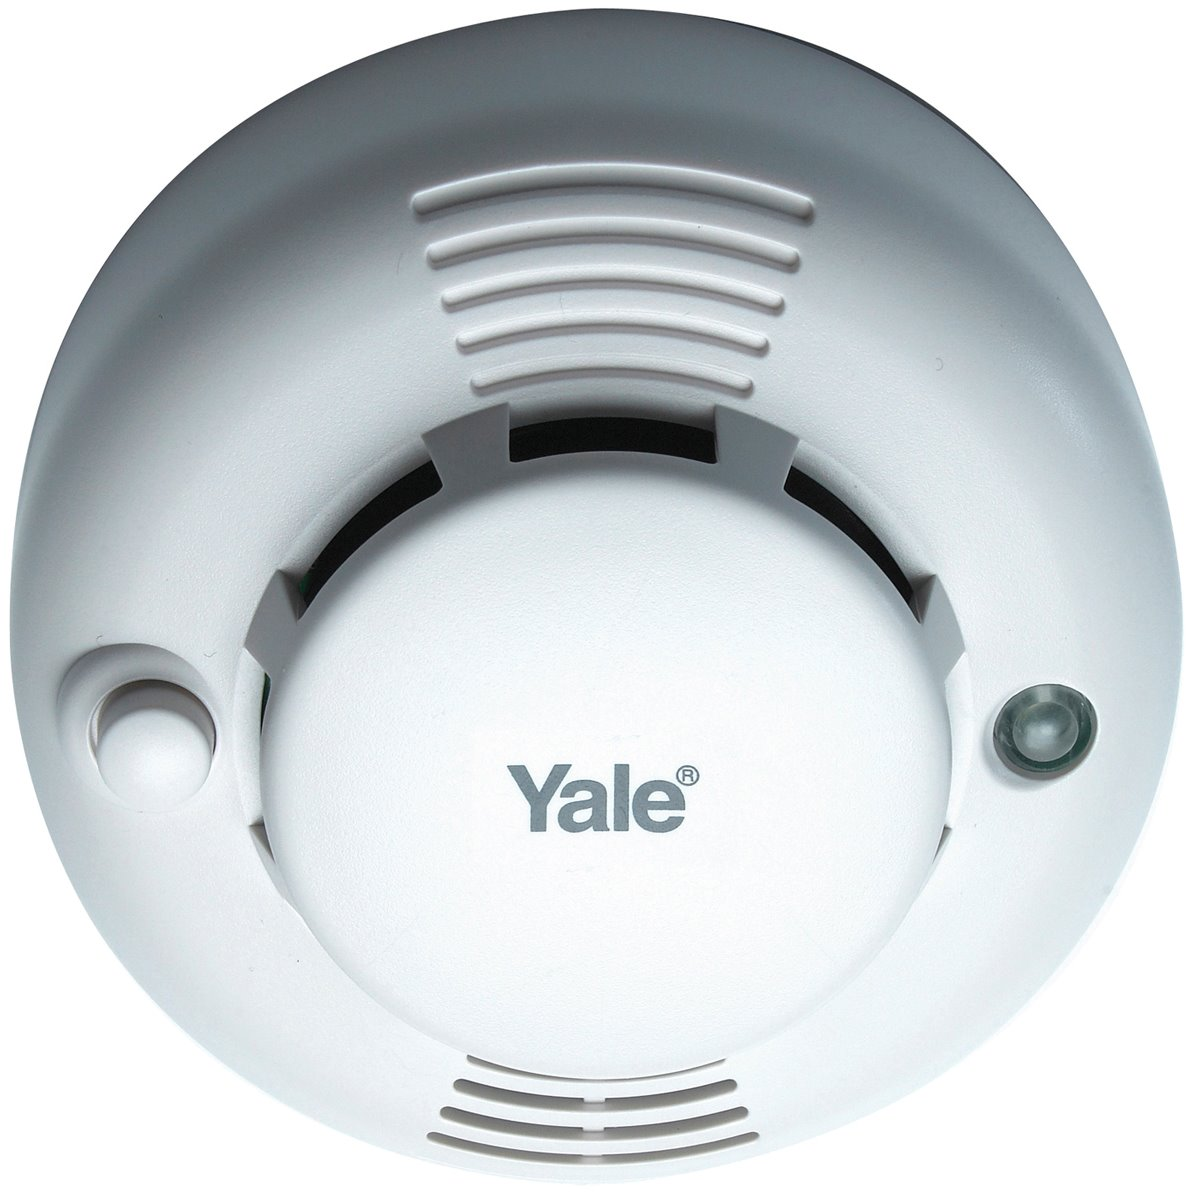 HSA3070 - Yale Fire and Smoke Detector